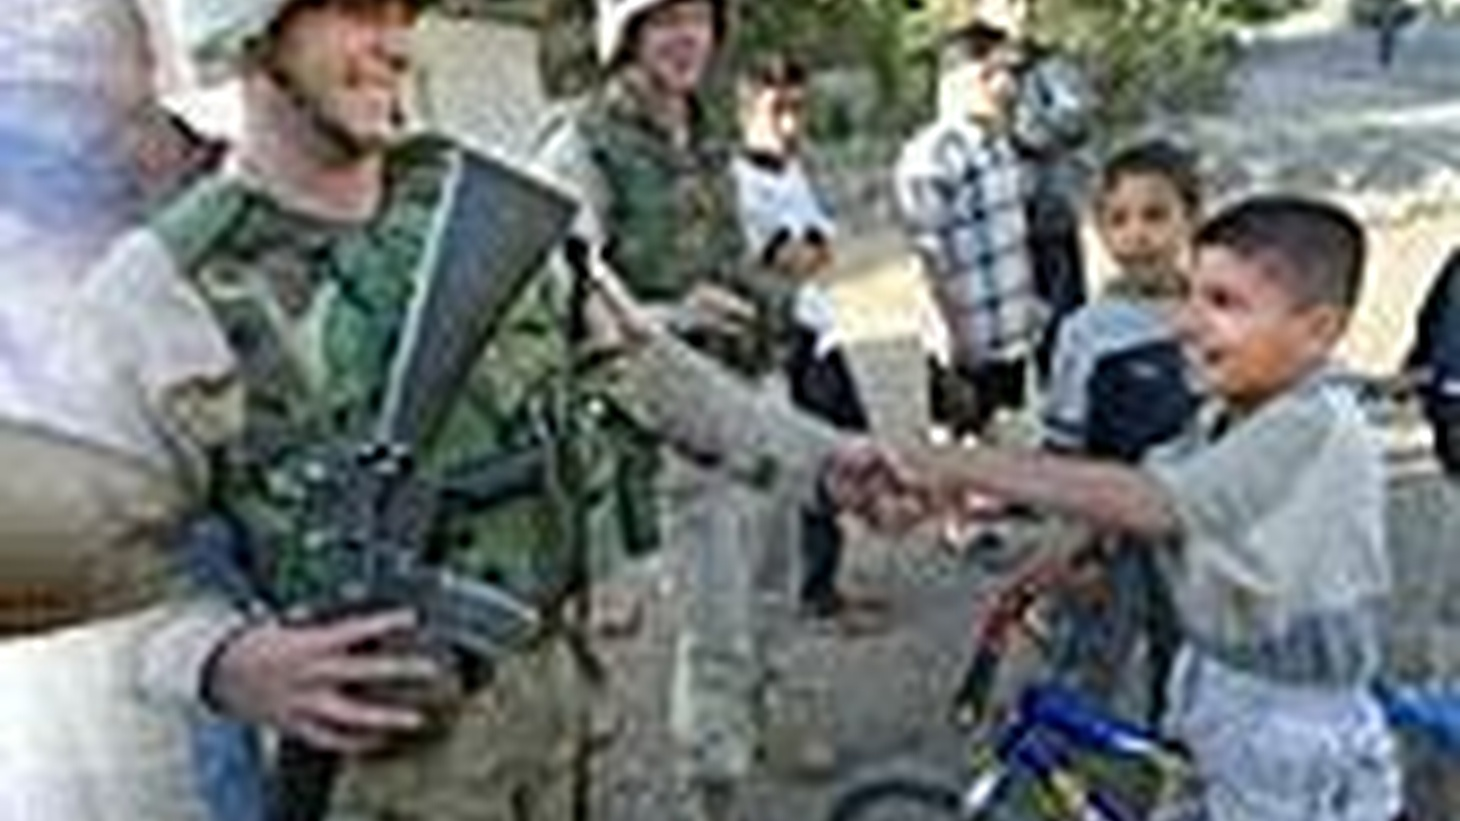 The US military made short work of Saddam Hussein's army, but America's mission in Iraq has yet to be accomplished.   Plus, Congressman Mark Foley's relations with teenage pages: the political fallout of another Congressional scandal.